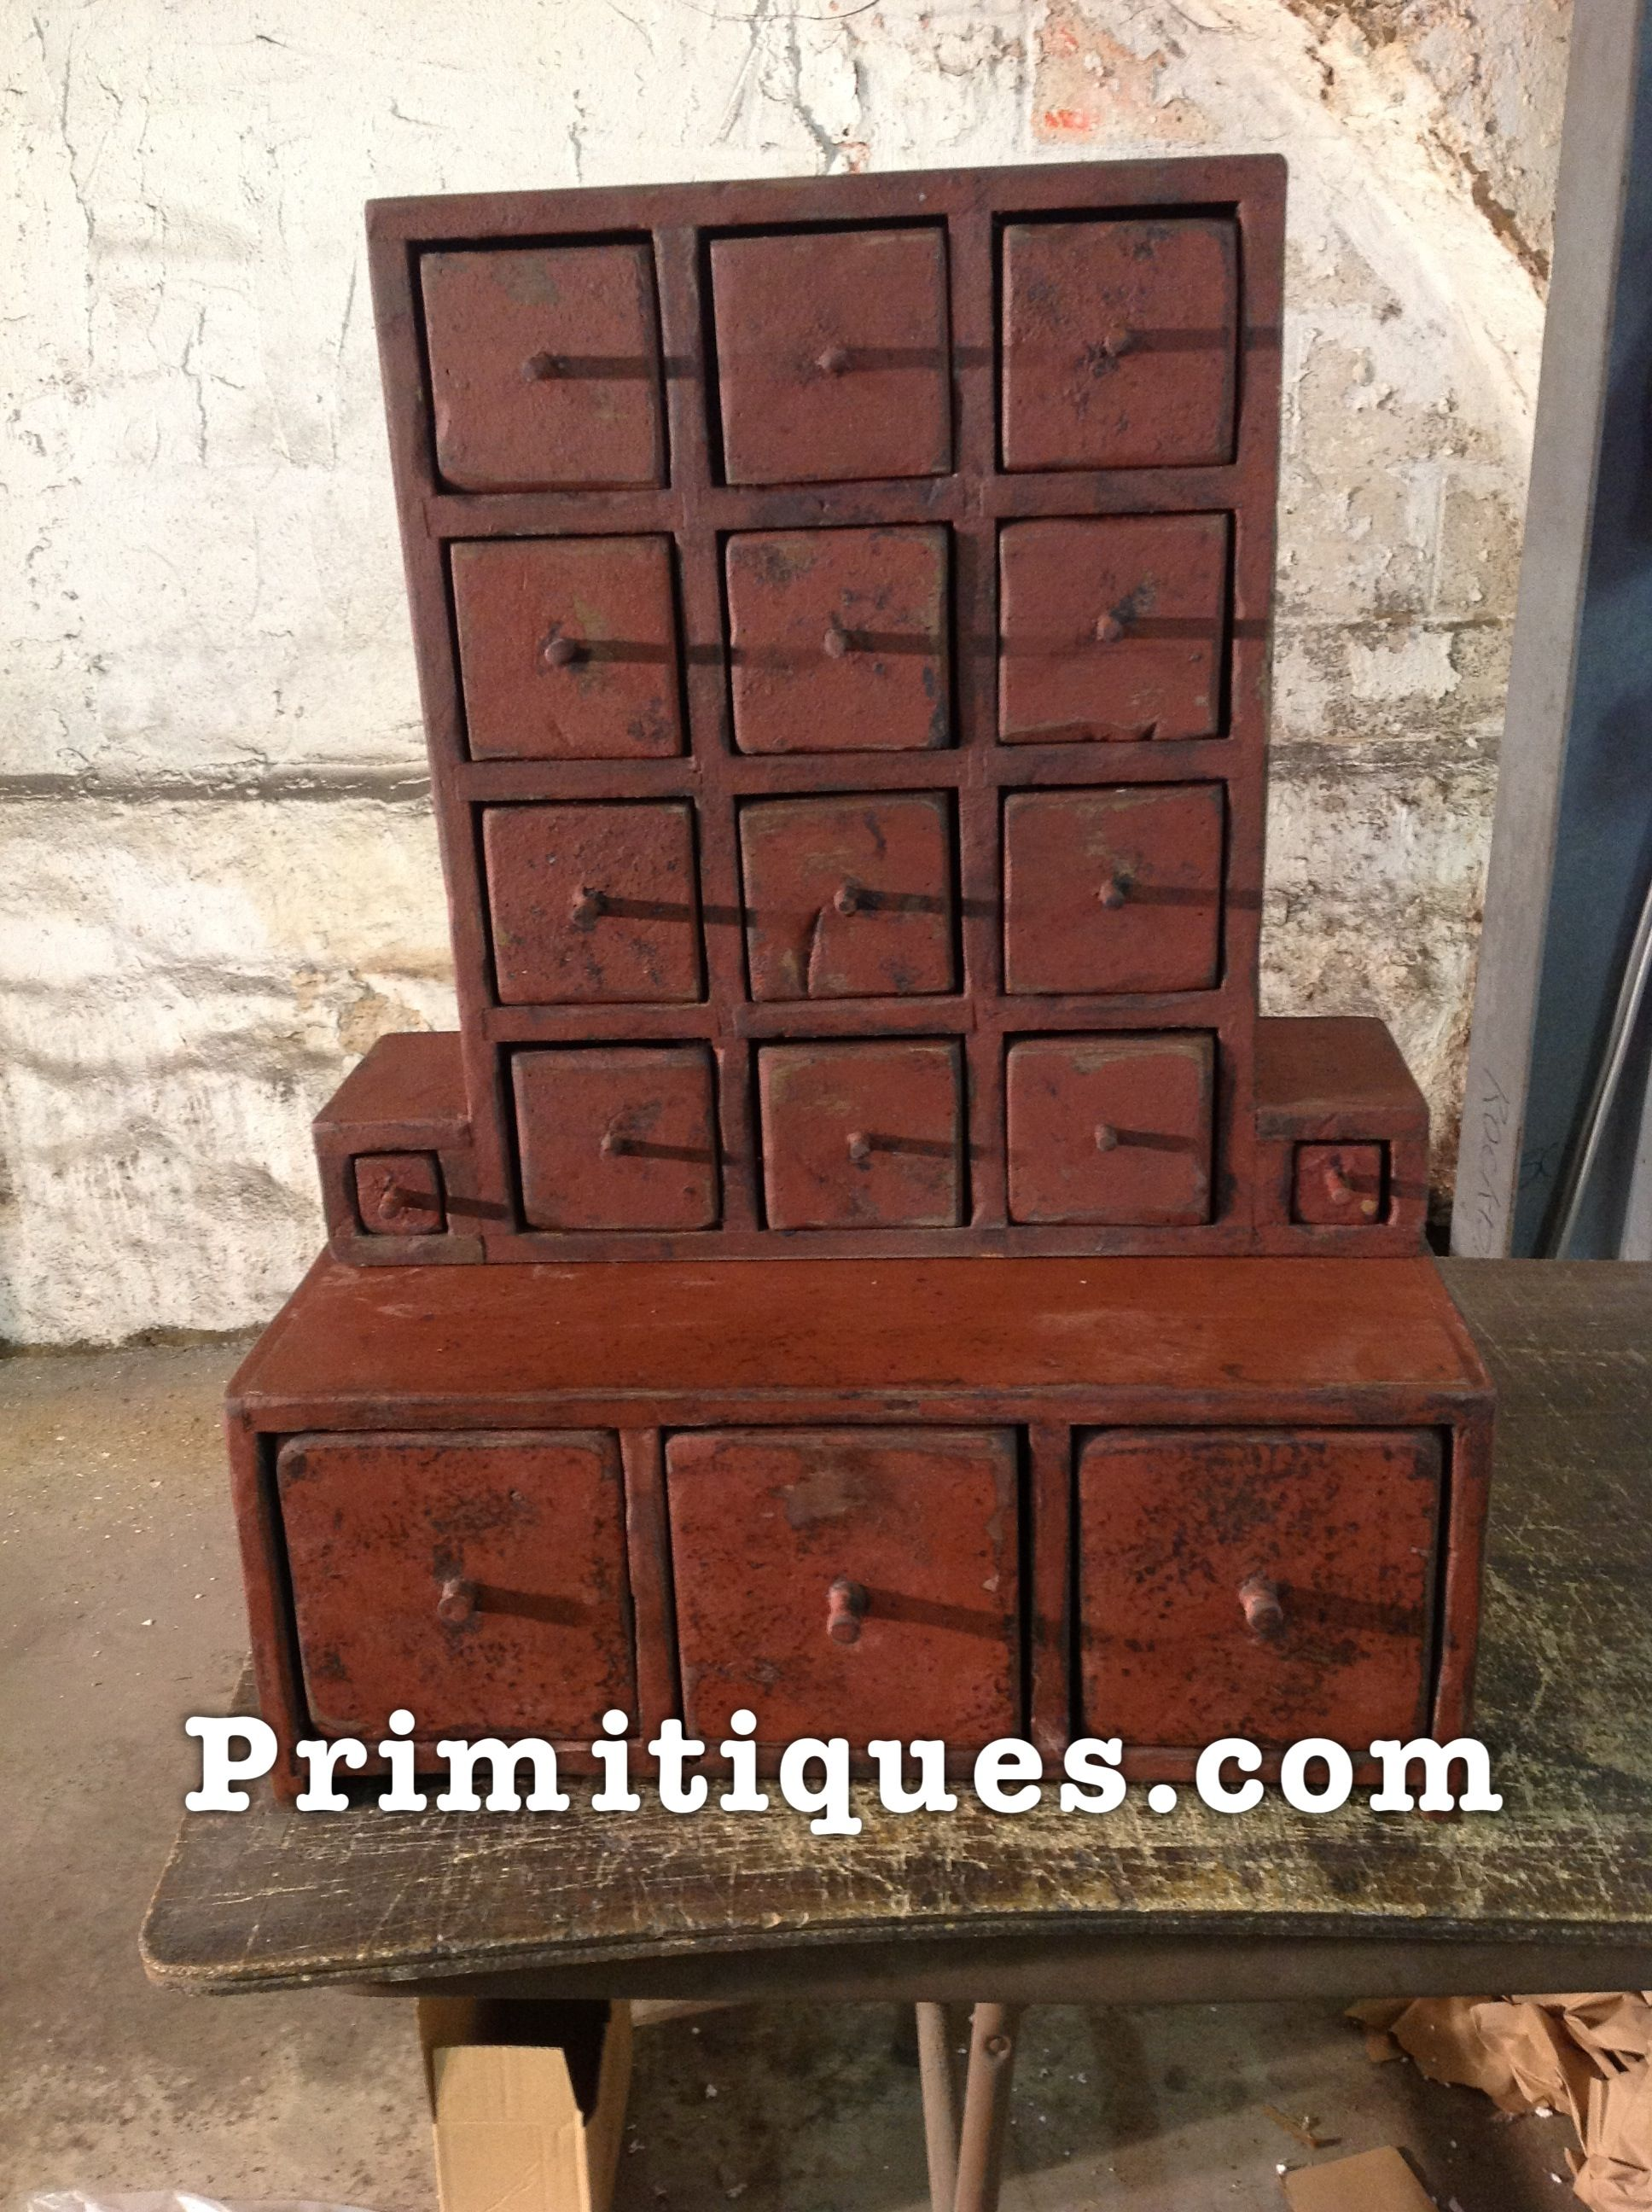 ... Painted Country Furniture, Rustic Furniture, Windsor Chairs, Country Bedroom  Furniture, Colonial Furniture, Early American Furniture, 18th Century ...